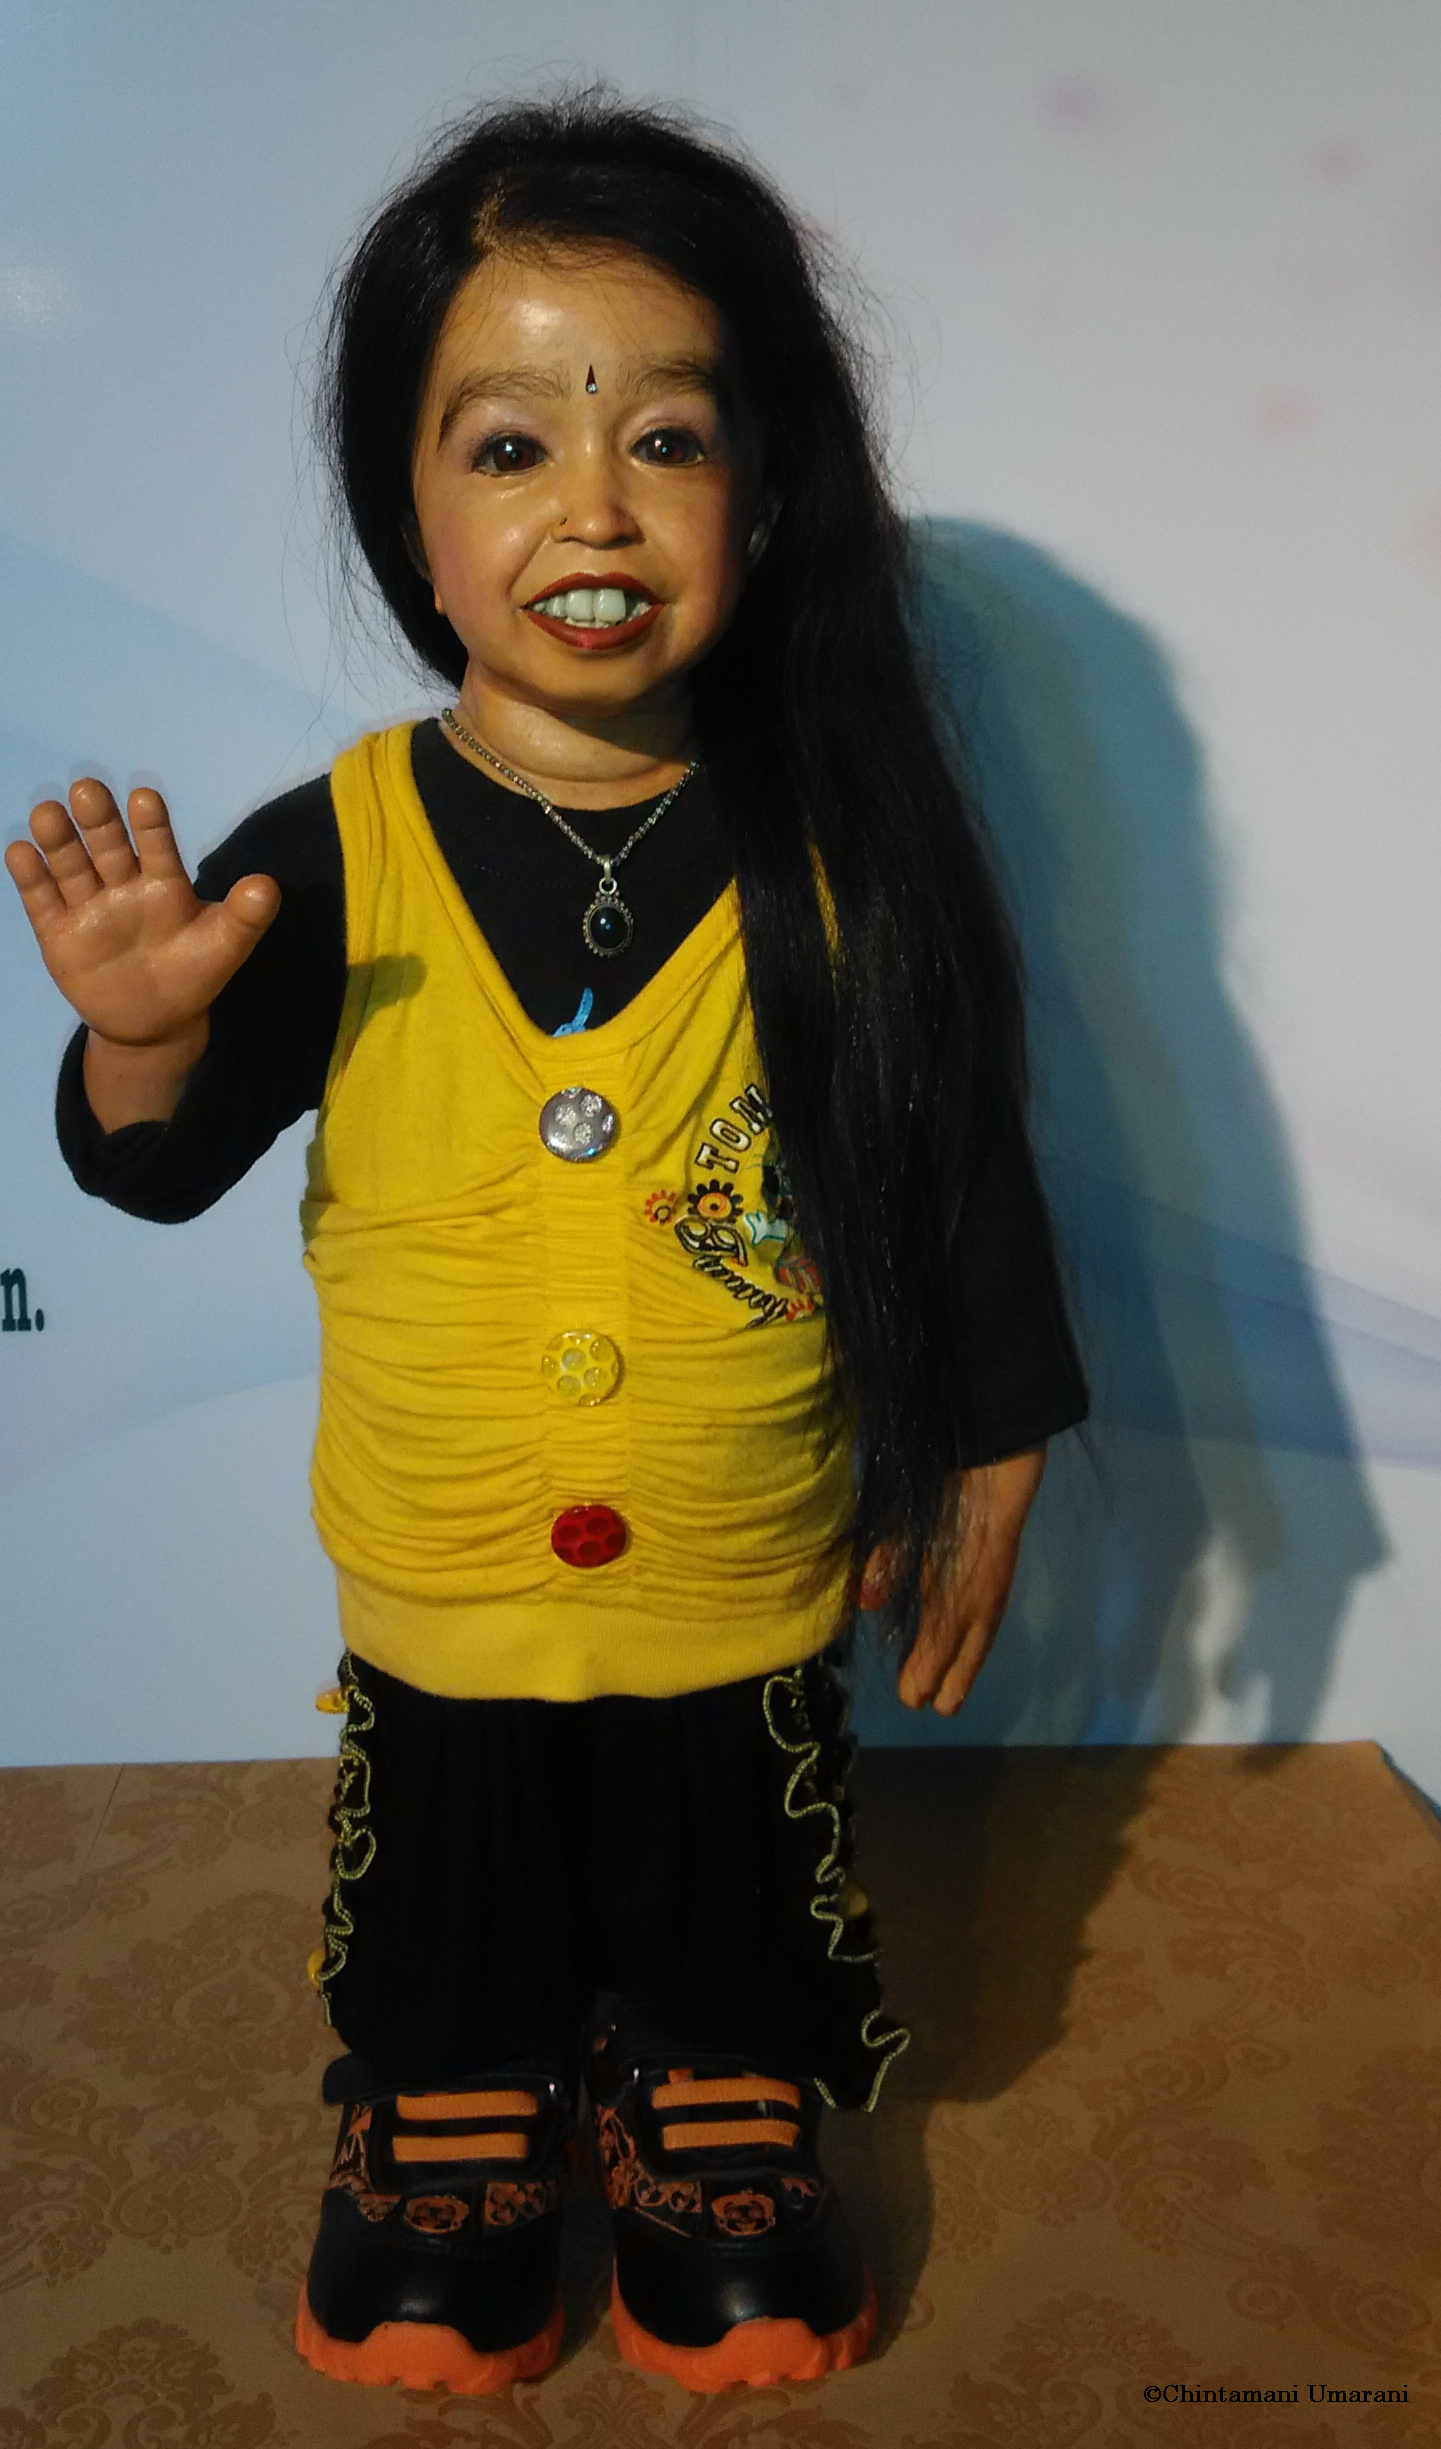 The smallest woman in the world 69